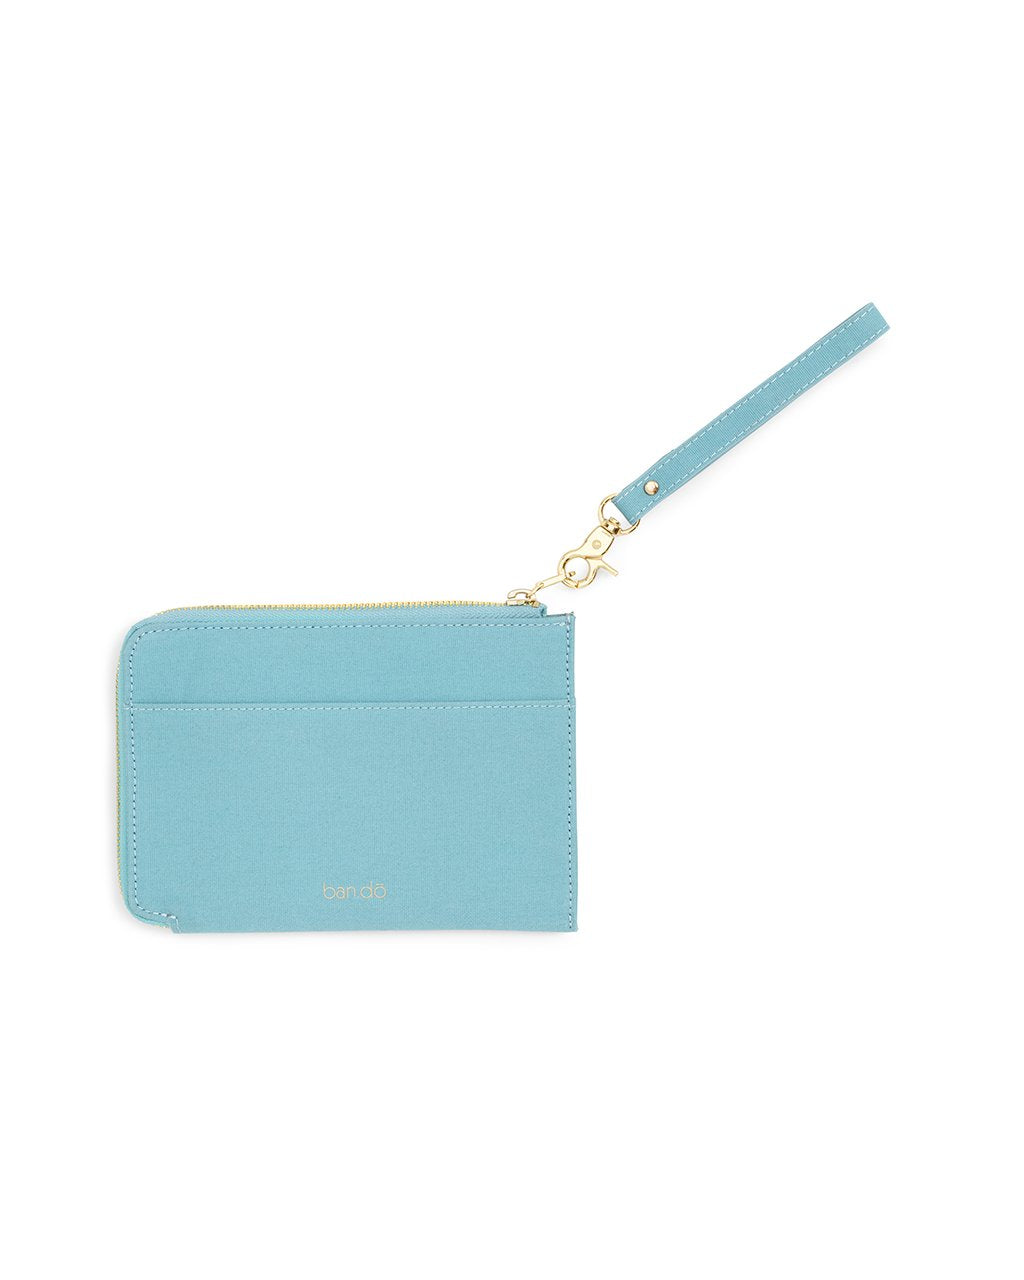 Back view of blue travel clutch